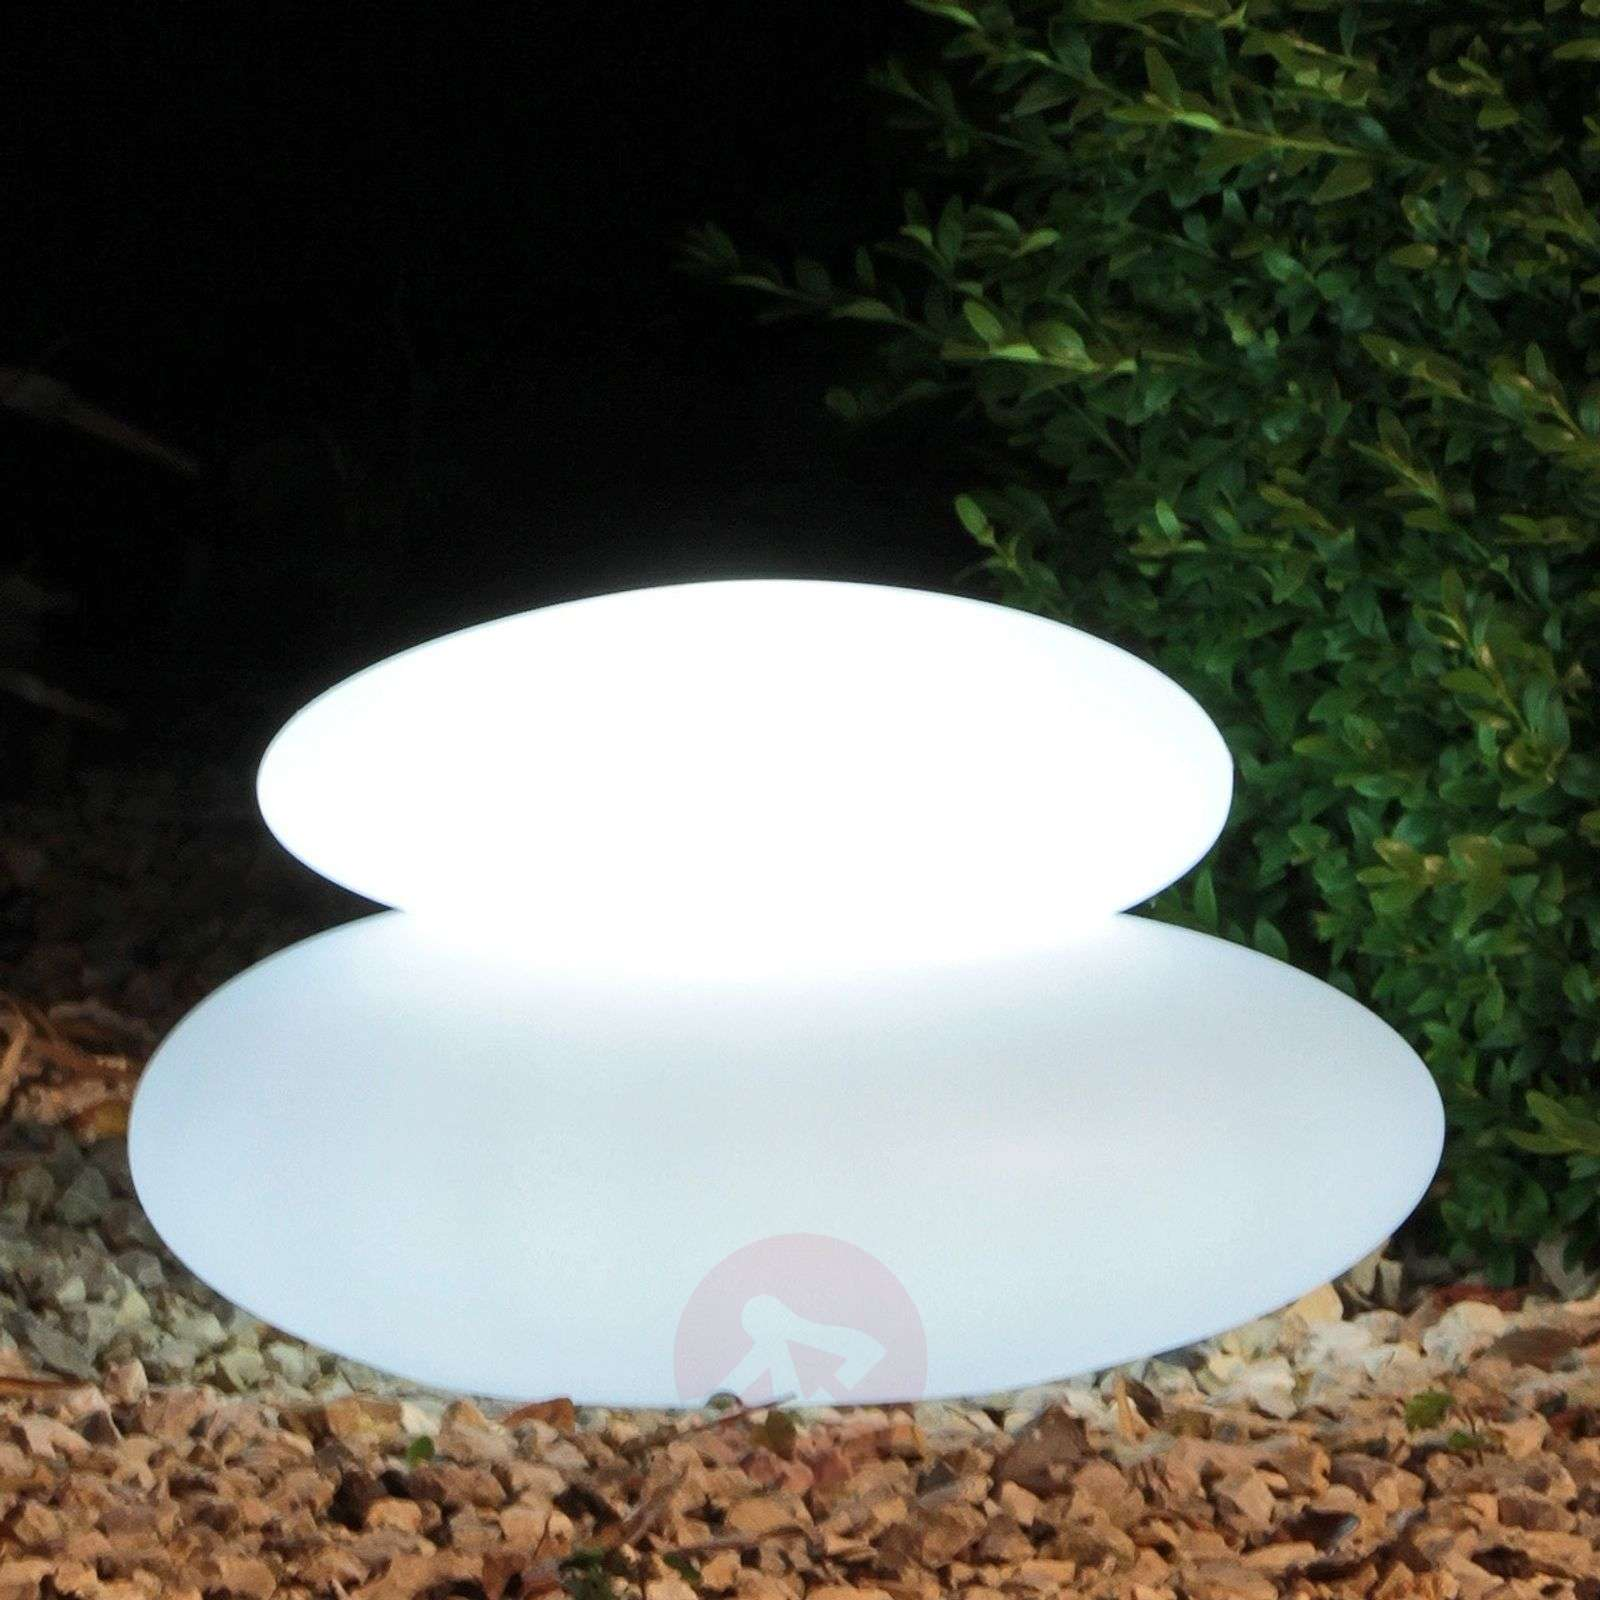 lámpara decor. exterior LED-Adeko Shining Stone-1004087-01